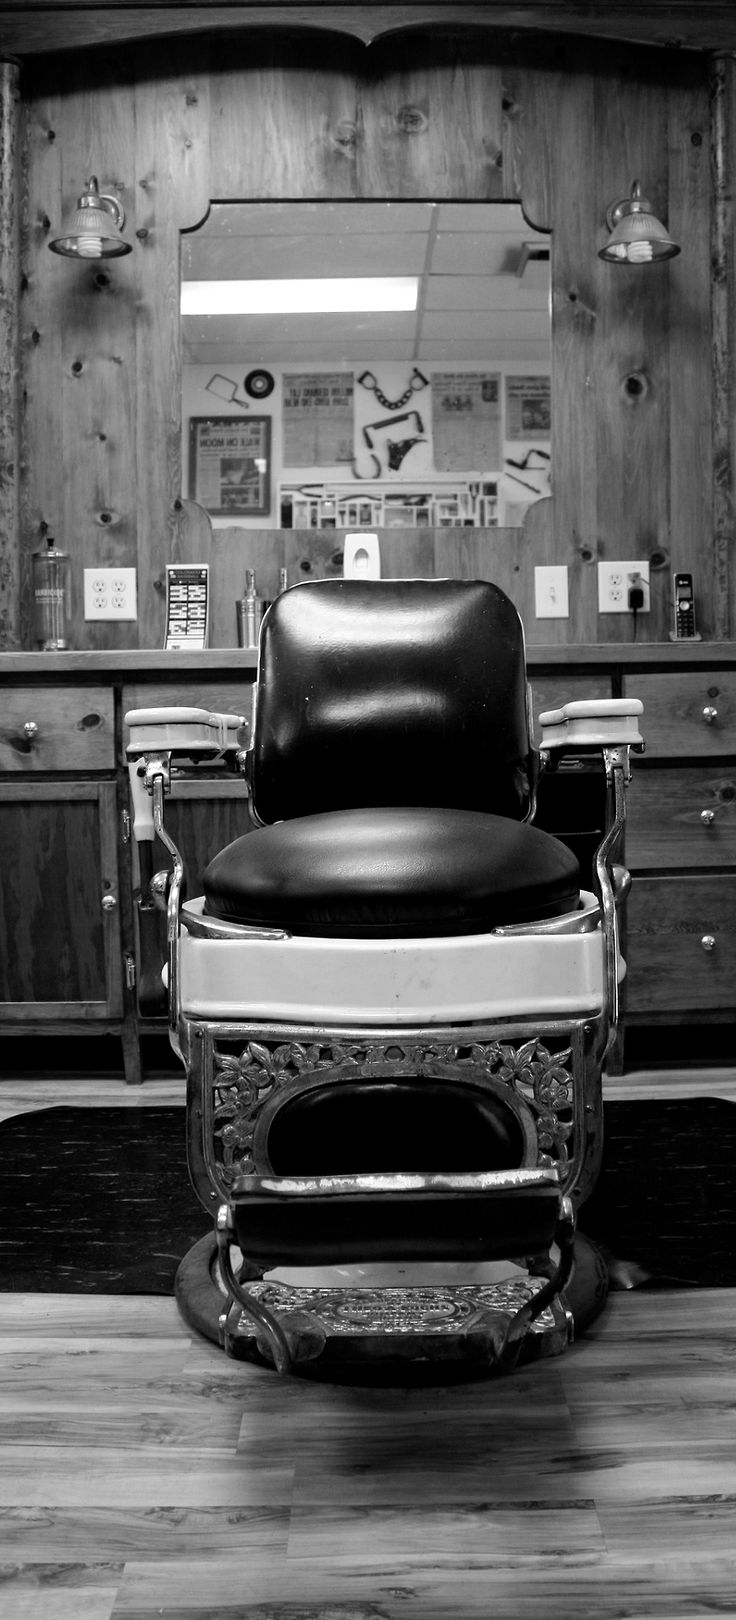 Barber shop pole distressed wall decal vintage style wall decor ebay - 106 Best Barbershop Ideas Images On Pinterest Barbershop Ideas Barber Shop And Barbershop Design